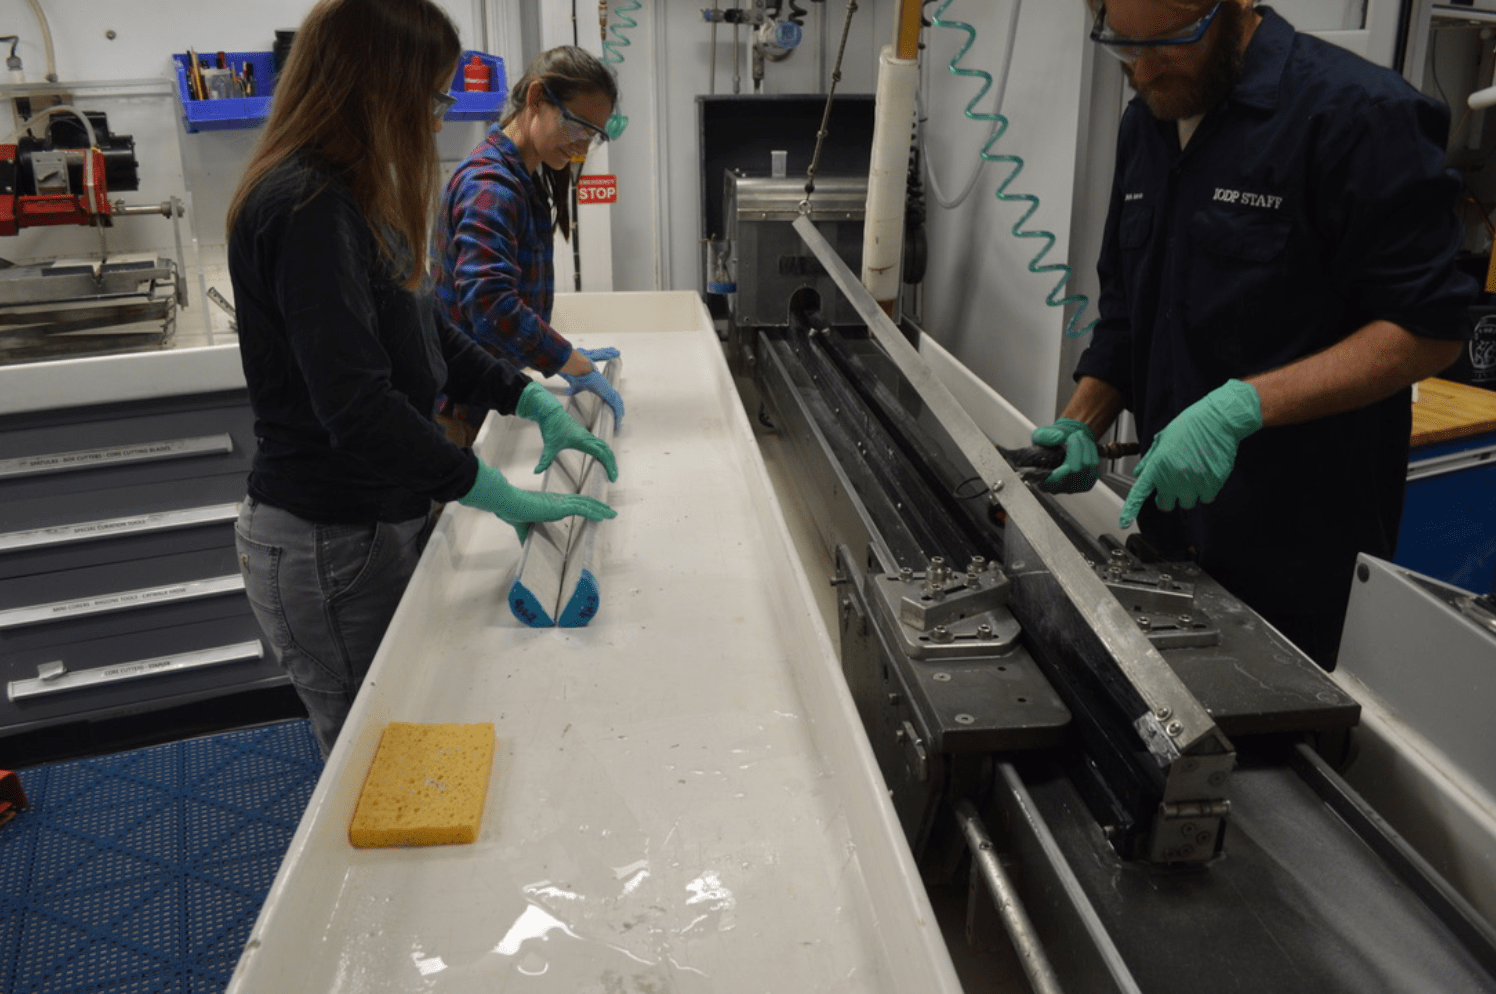 Three technicians in the core splitting room. One is spraying the core cutter with a hose. The other two are holding a core that has just been split, and you can see the insides of the core.